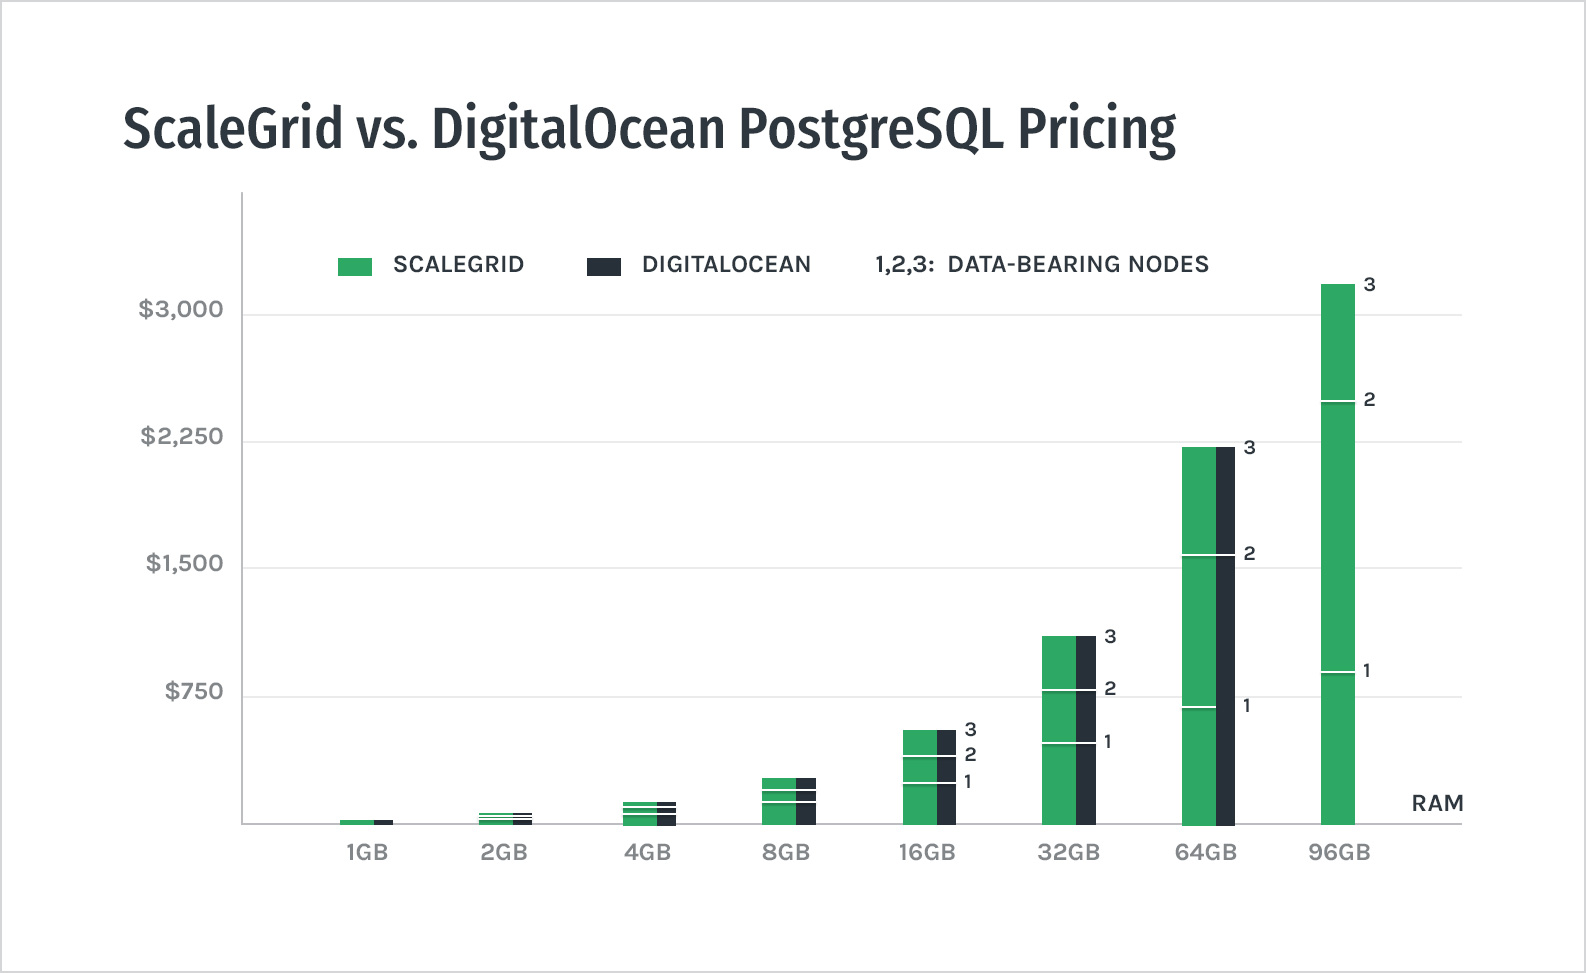 ScaleGrid vs. DigitalOcean PostgreSQL Pricing - Bar Chart